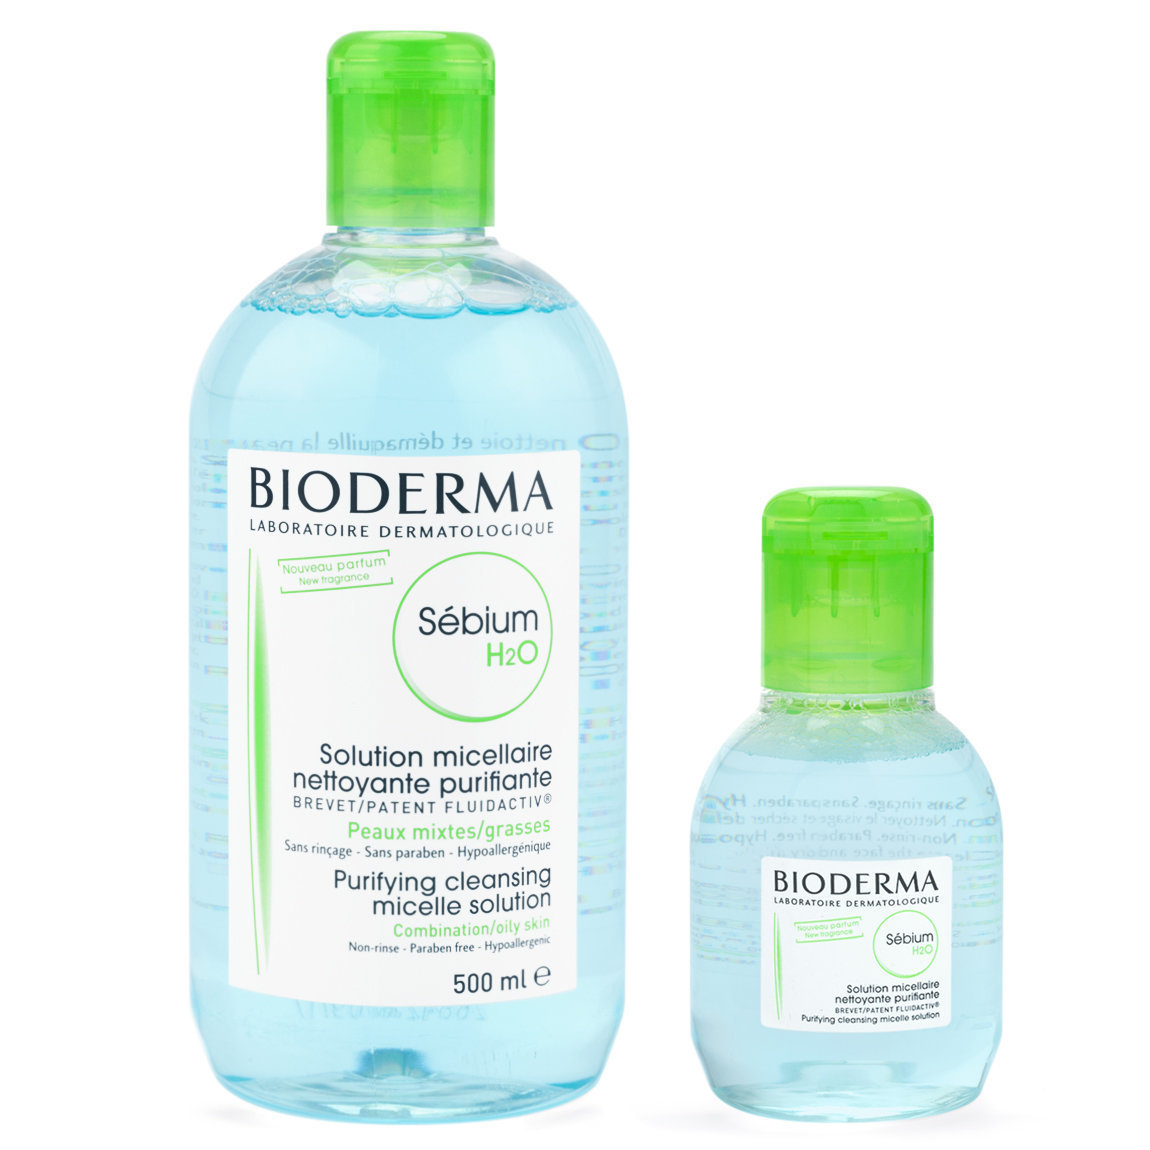 Bioderma Sébium H2O 500 ml (+100 ml Travel Size) product smear.